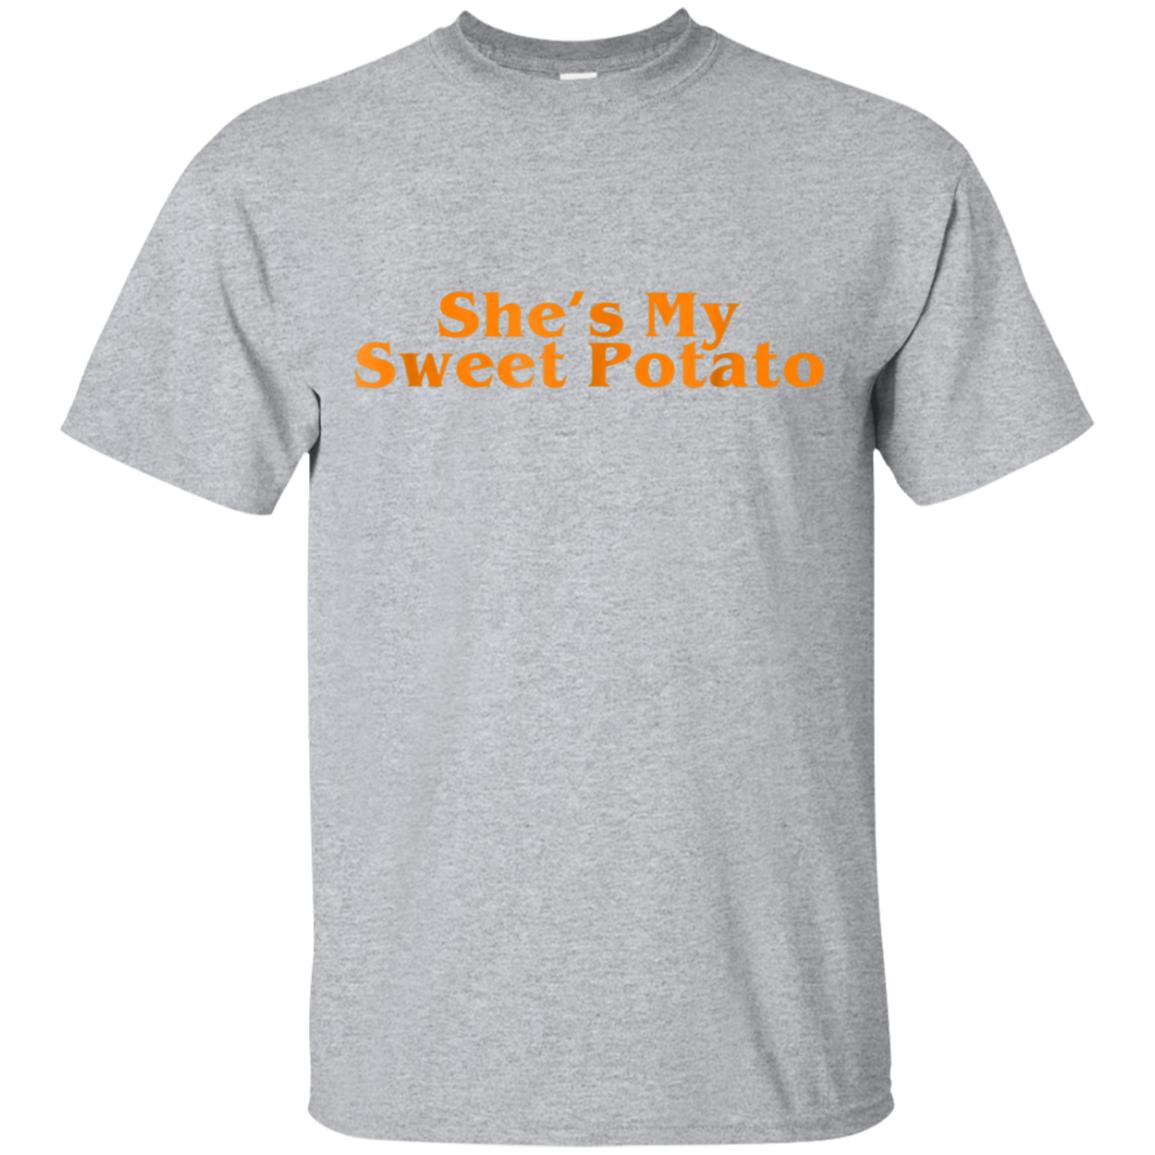 Shes My Sweet Potato Shirt, Couple Shirts for Him and Her 99promocode